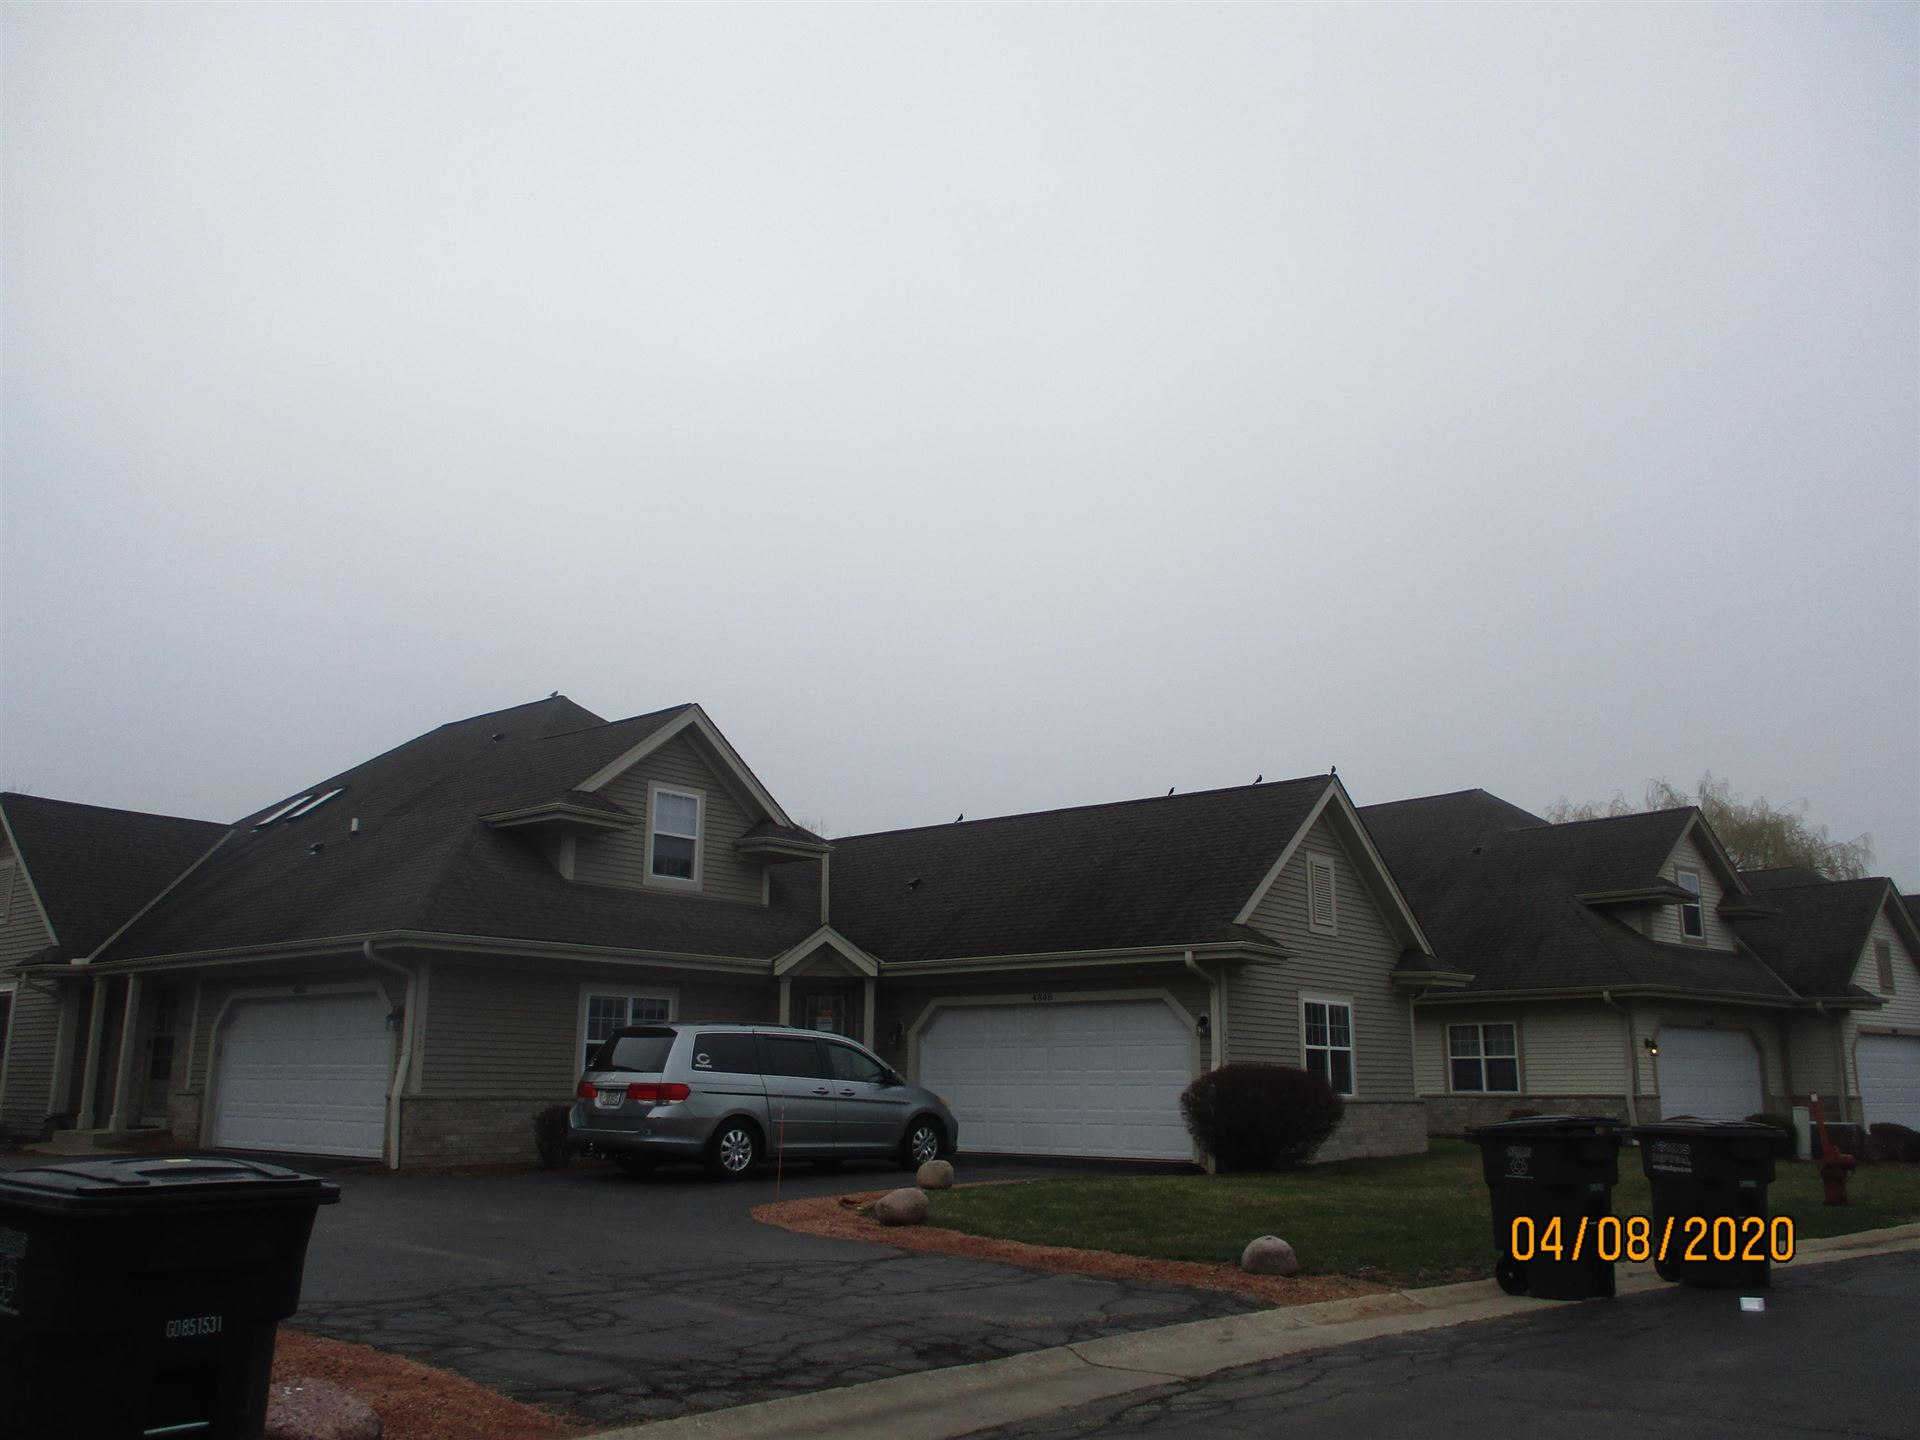 4848 S Waterview Ct, Greenfield, WI 53220 - #: 1684658